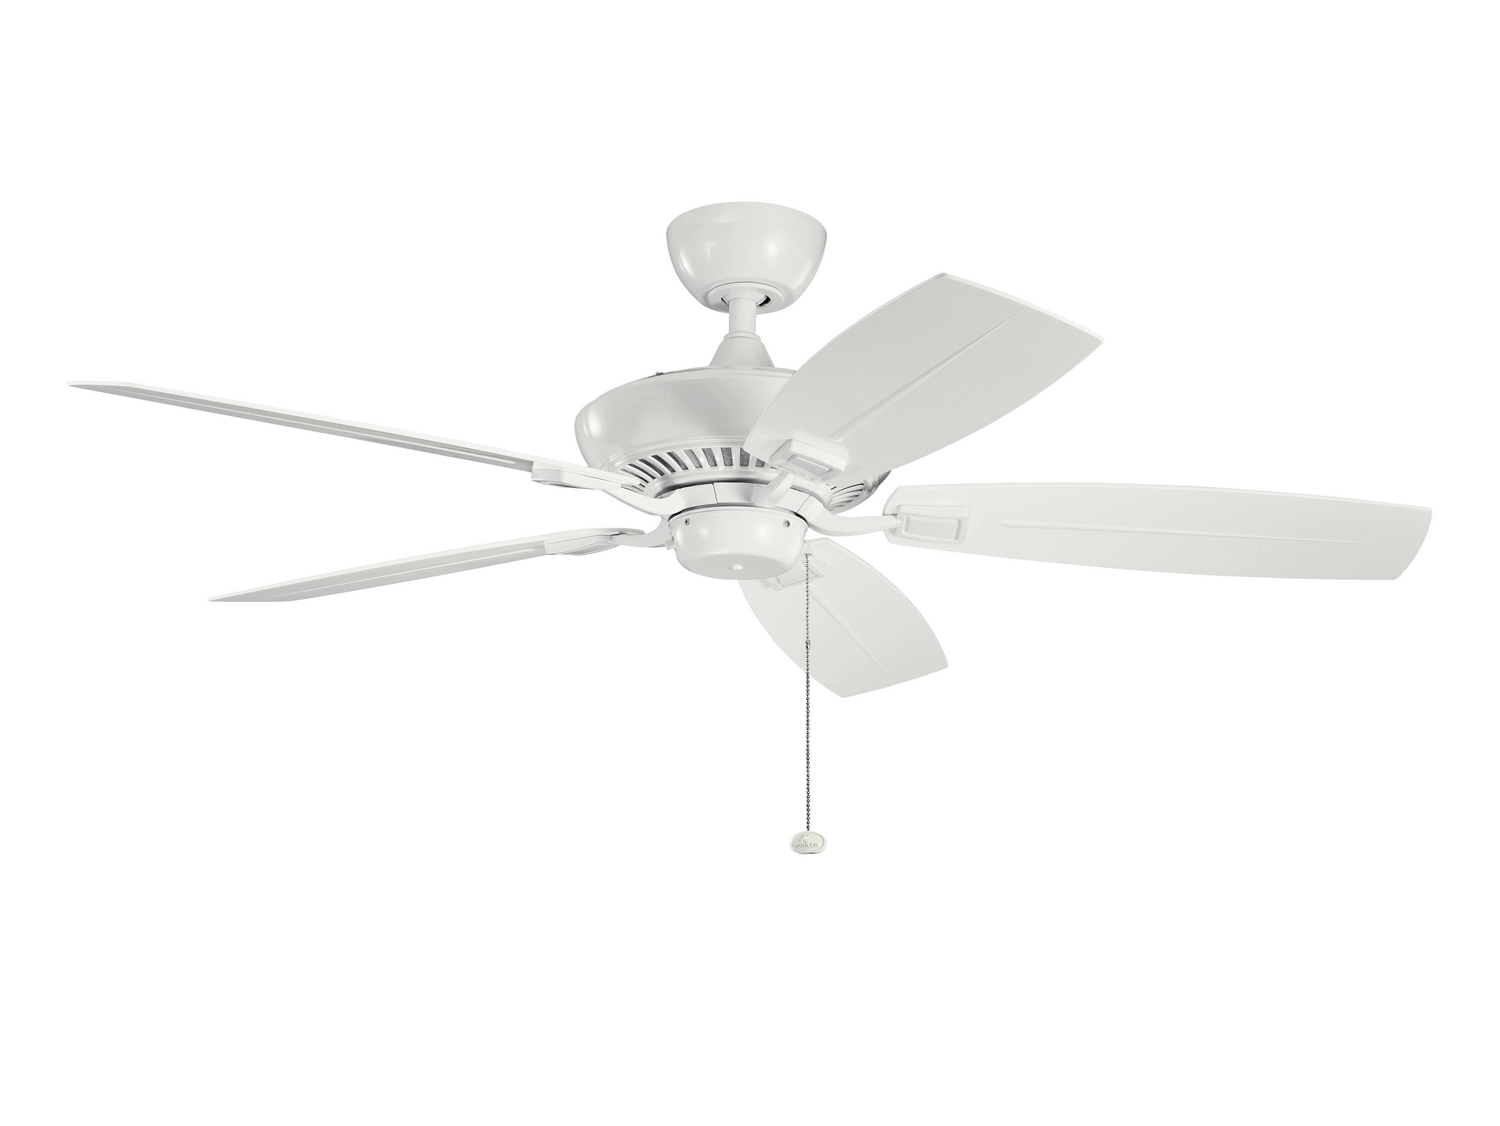 52 inchCeiling Fan from the Canfield Patio collection by Kichler 310192WH